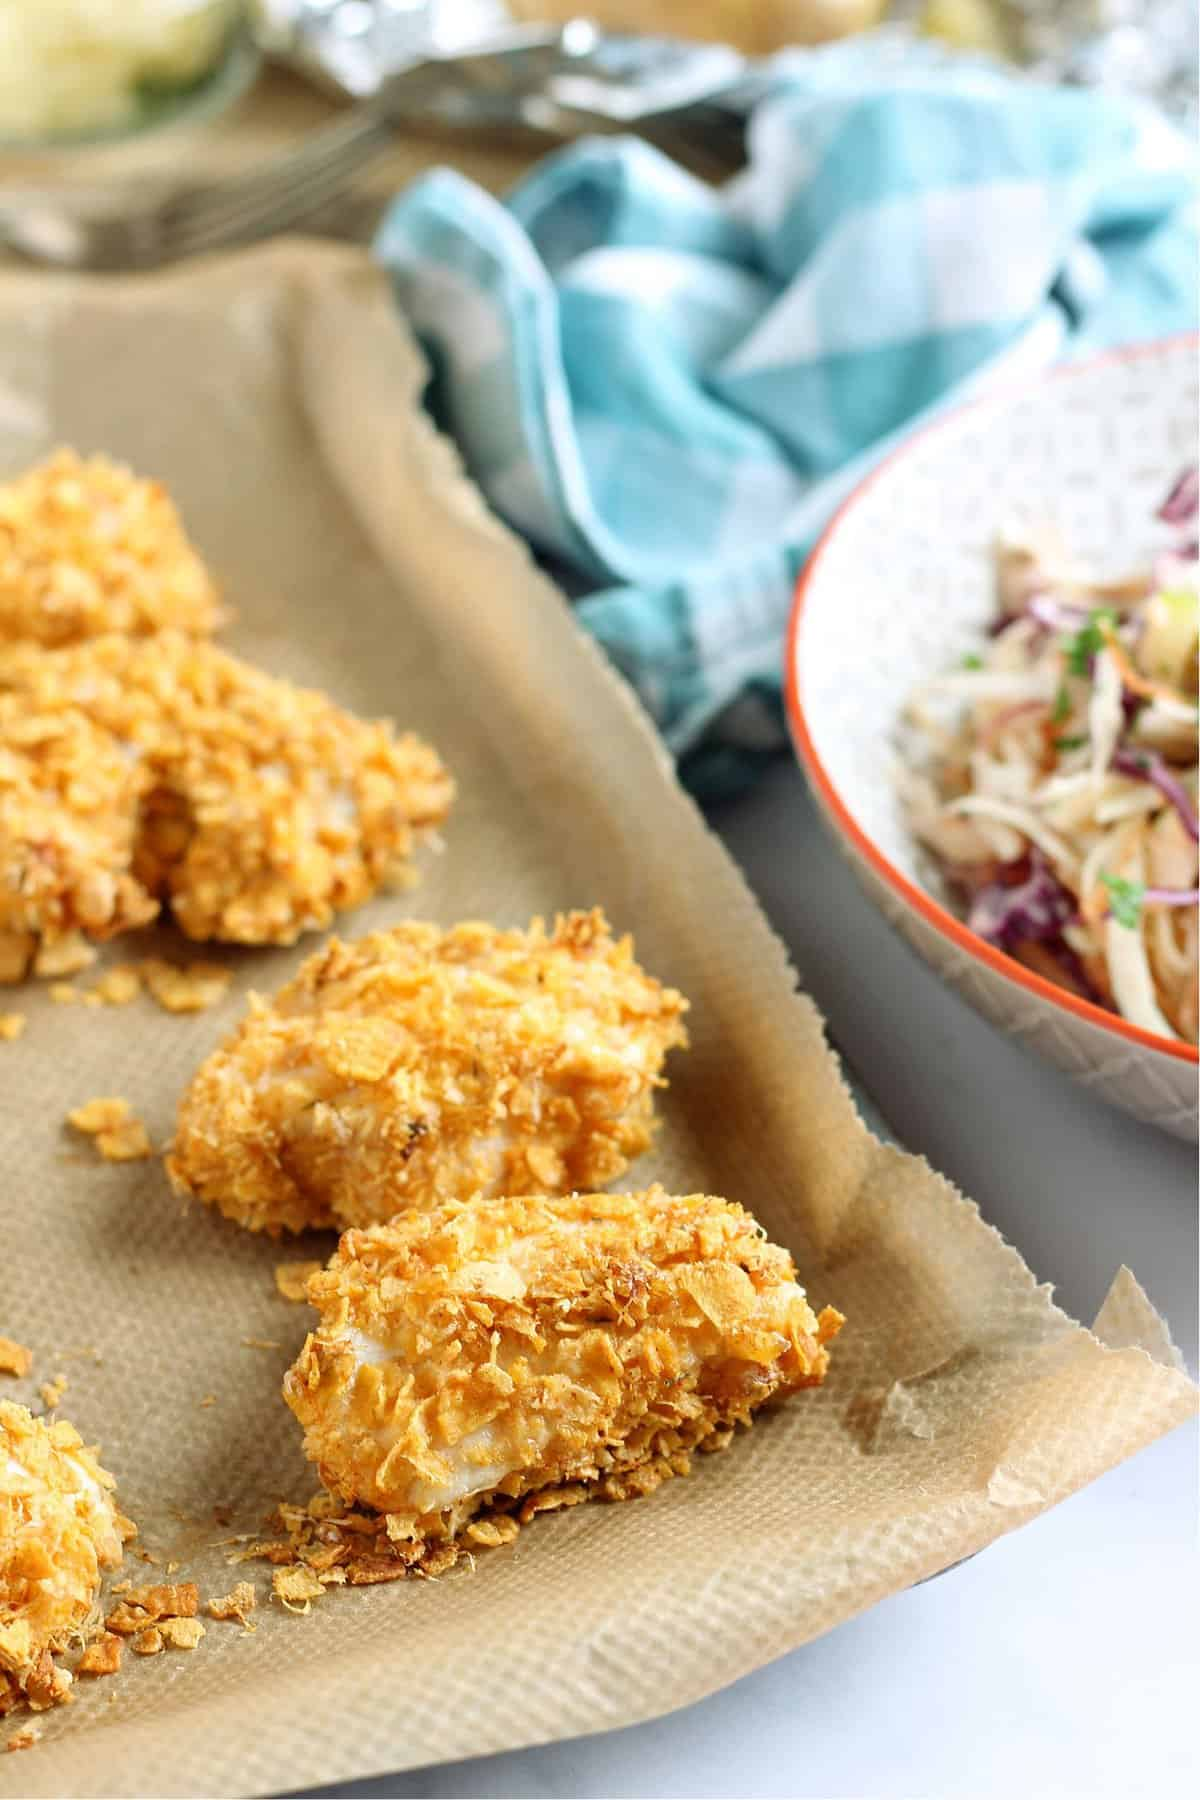 Homemade nuggets with apple slaw